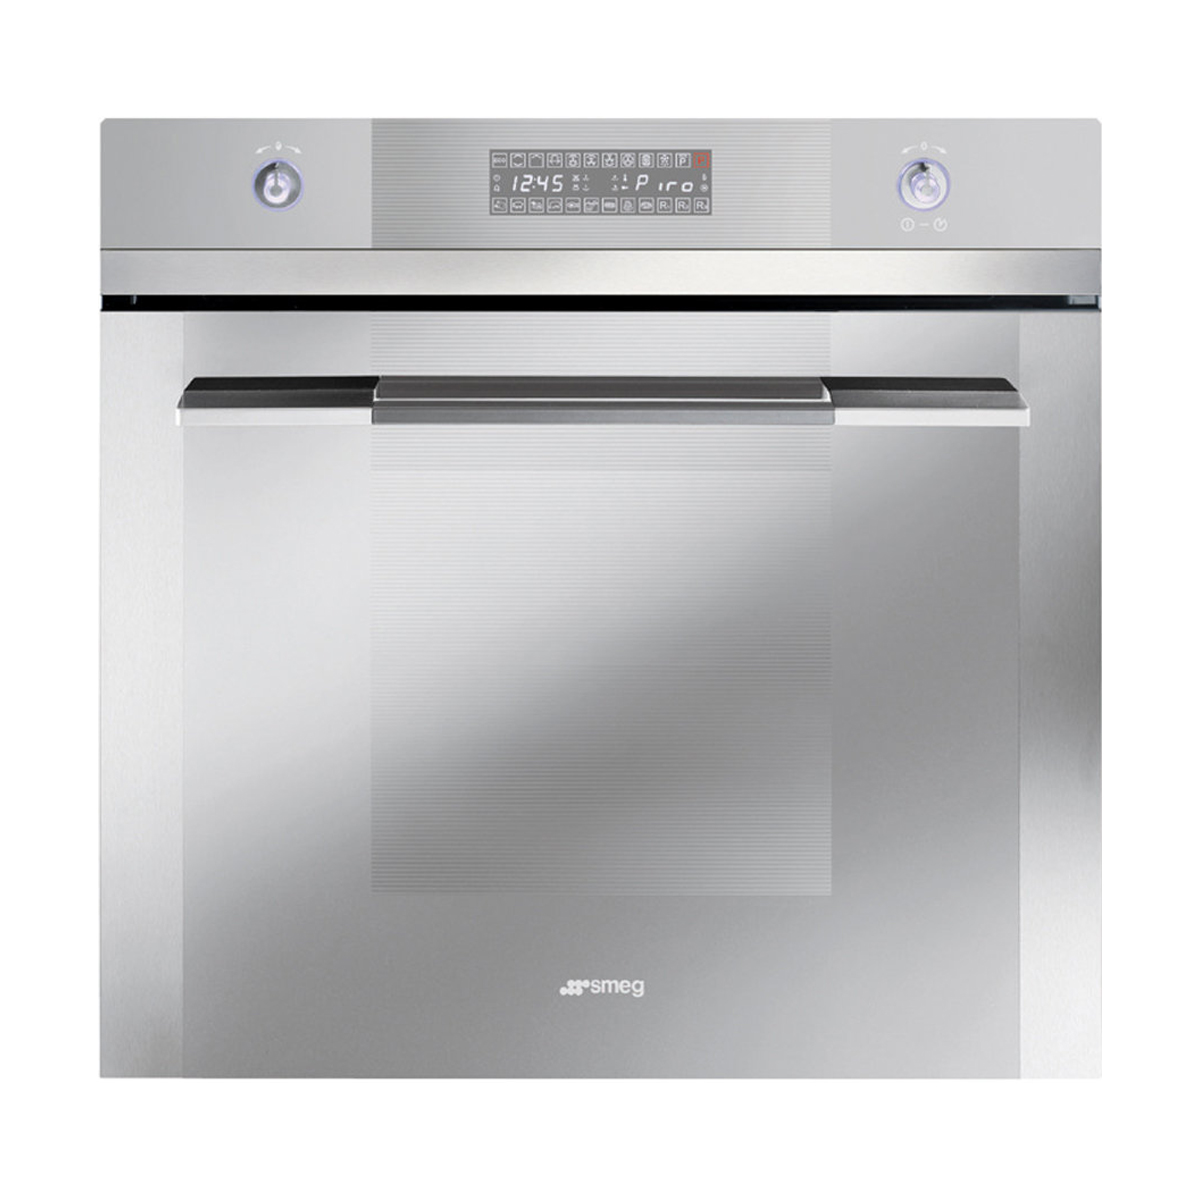 Smeg SAP1128 60cm Electric Built-In Pyrolytic Oven